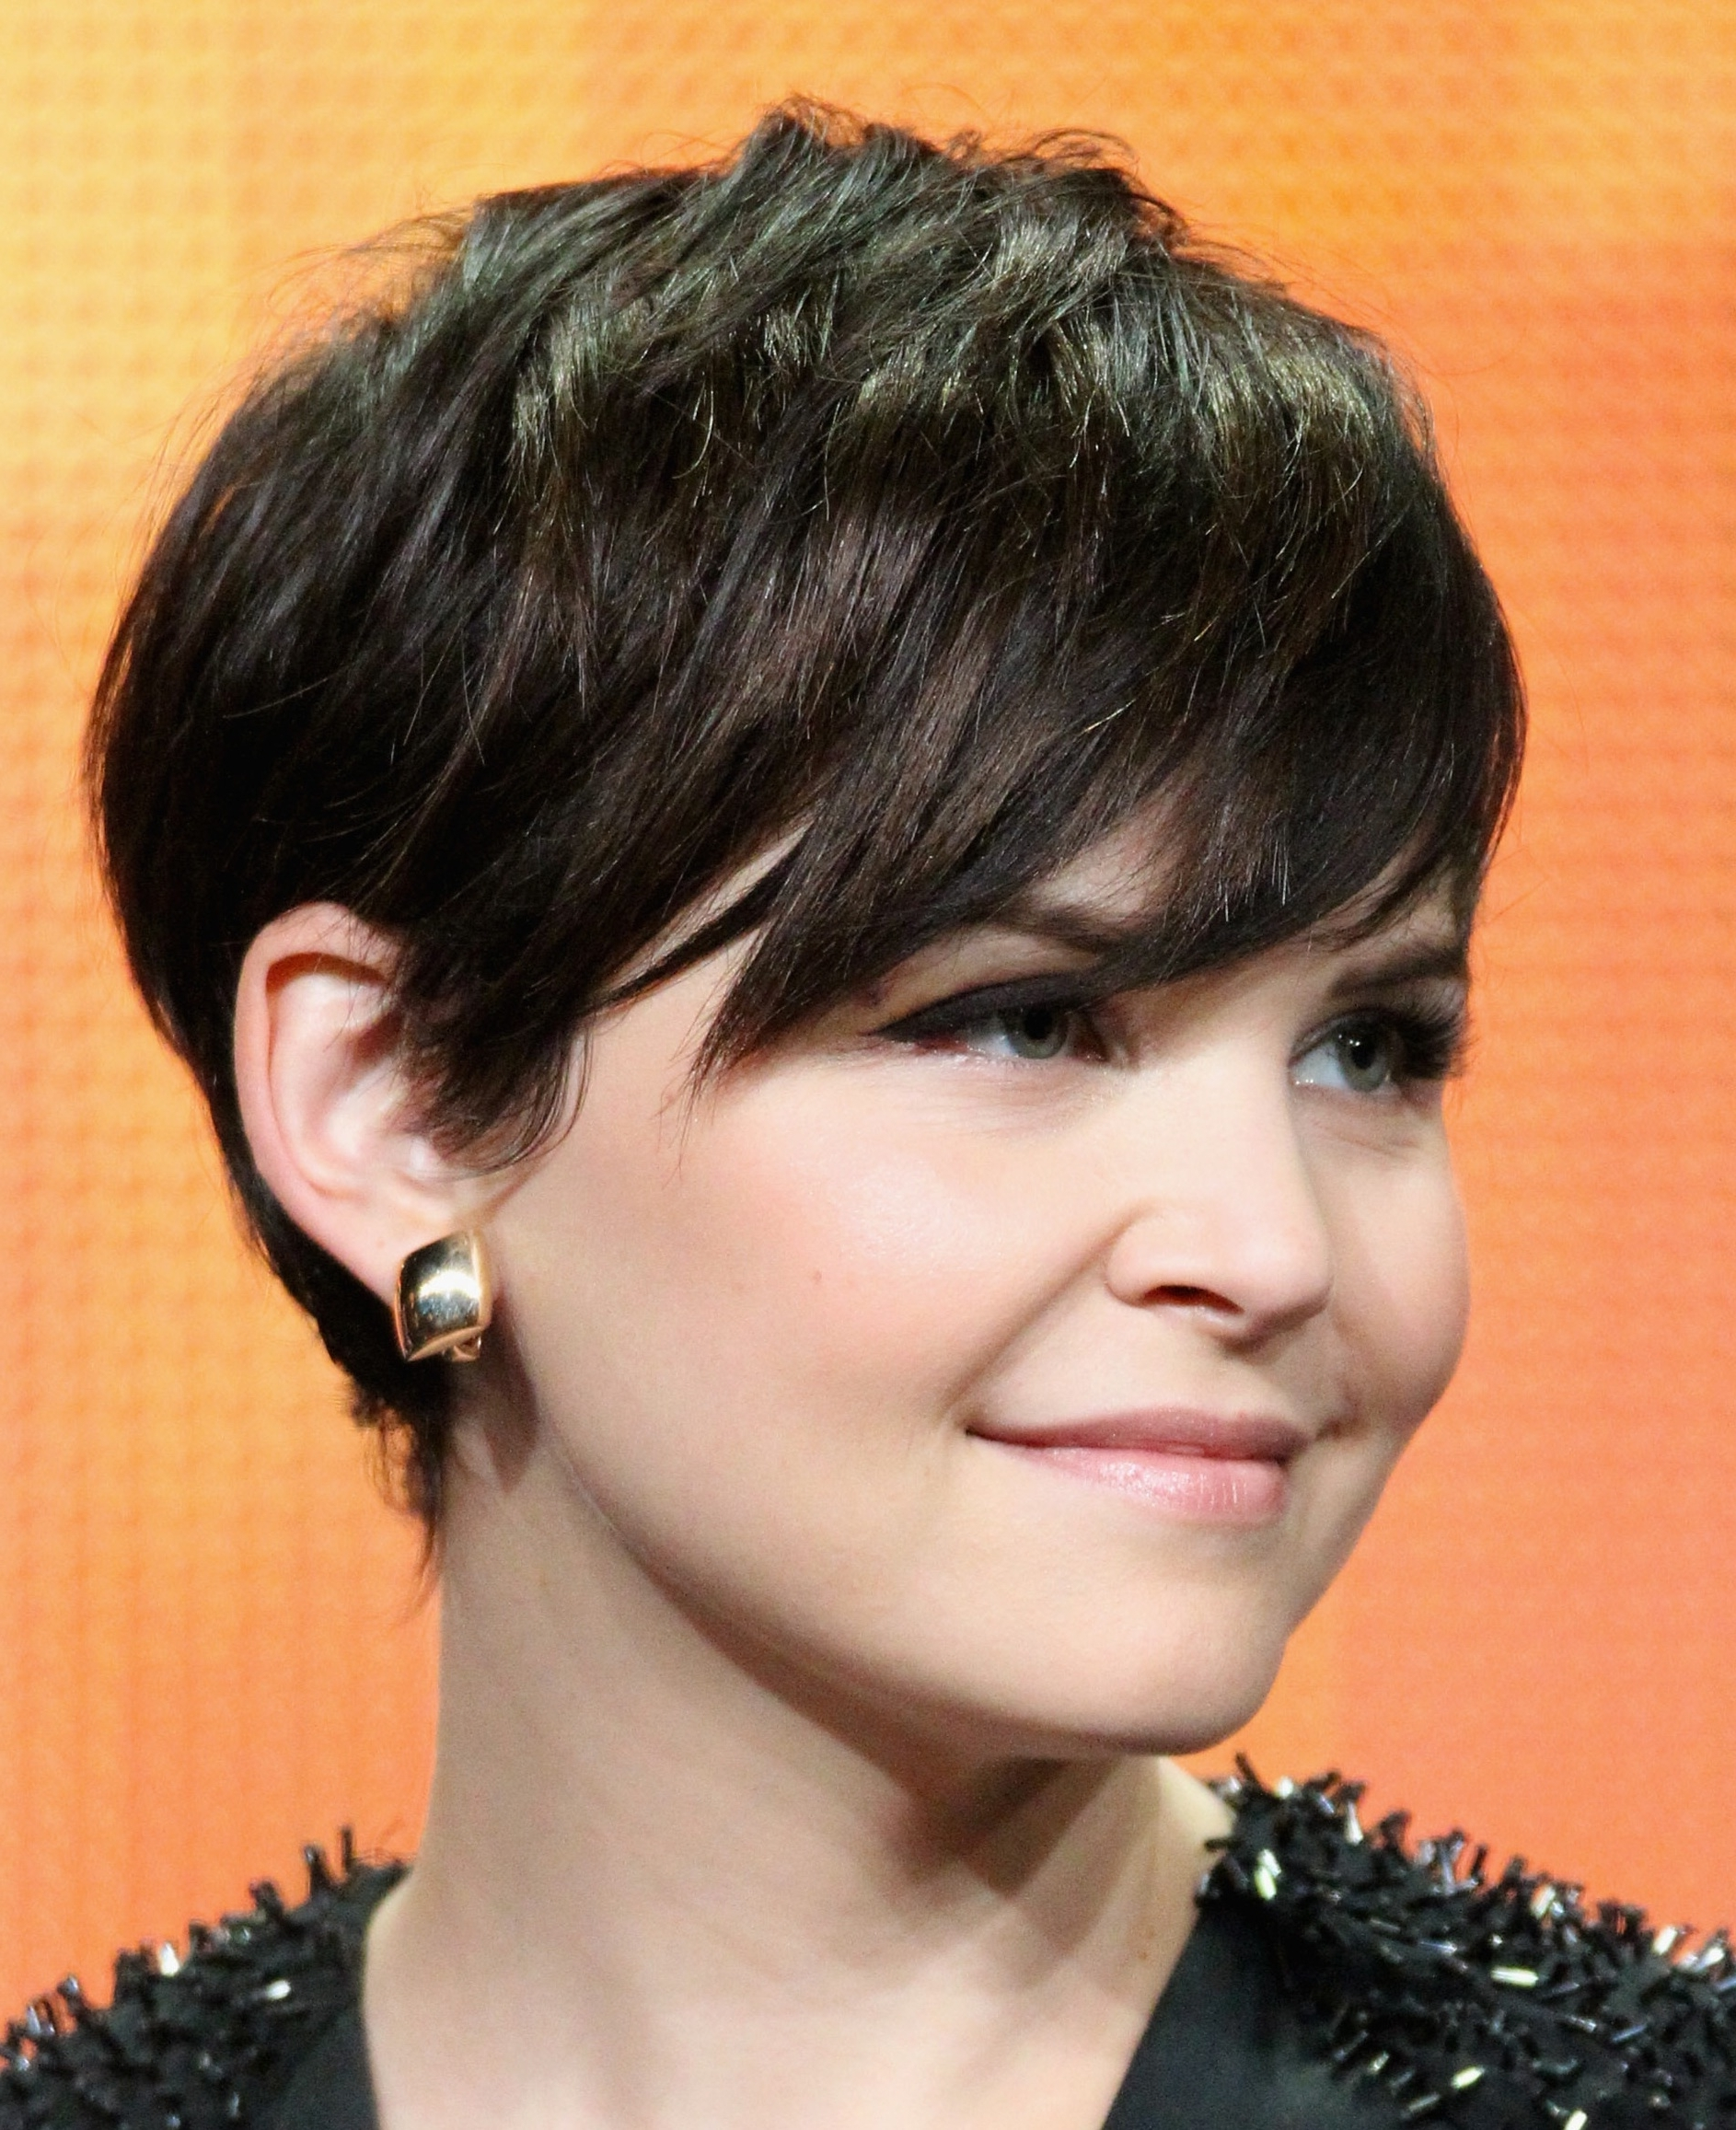 A Gallery Of Short Brown Hair: From Pixies To Shags   Short Dark With Most Recently Pixie Hairstyles For Dark Hair (View 2 of 15)